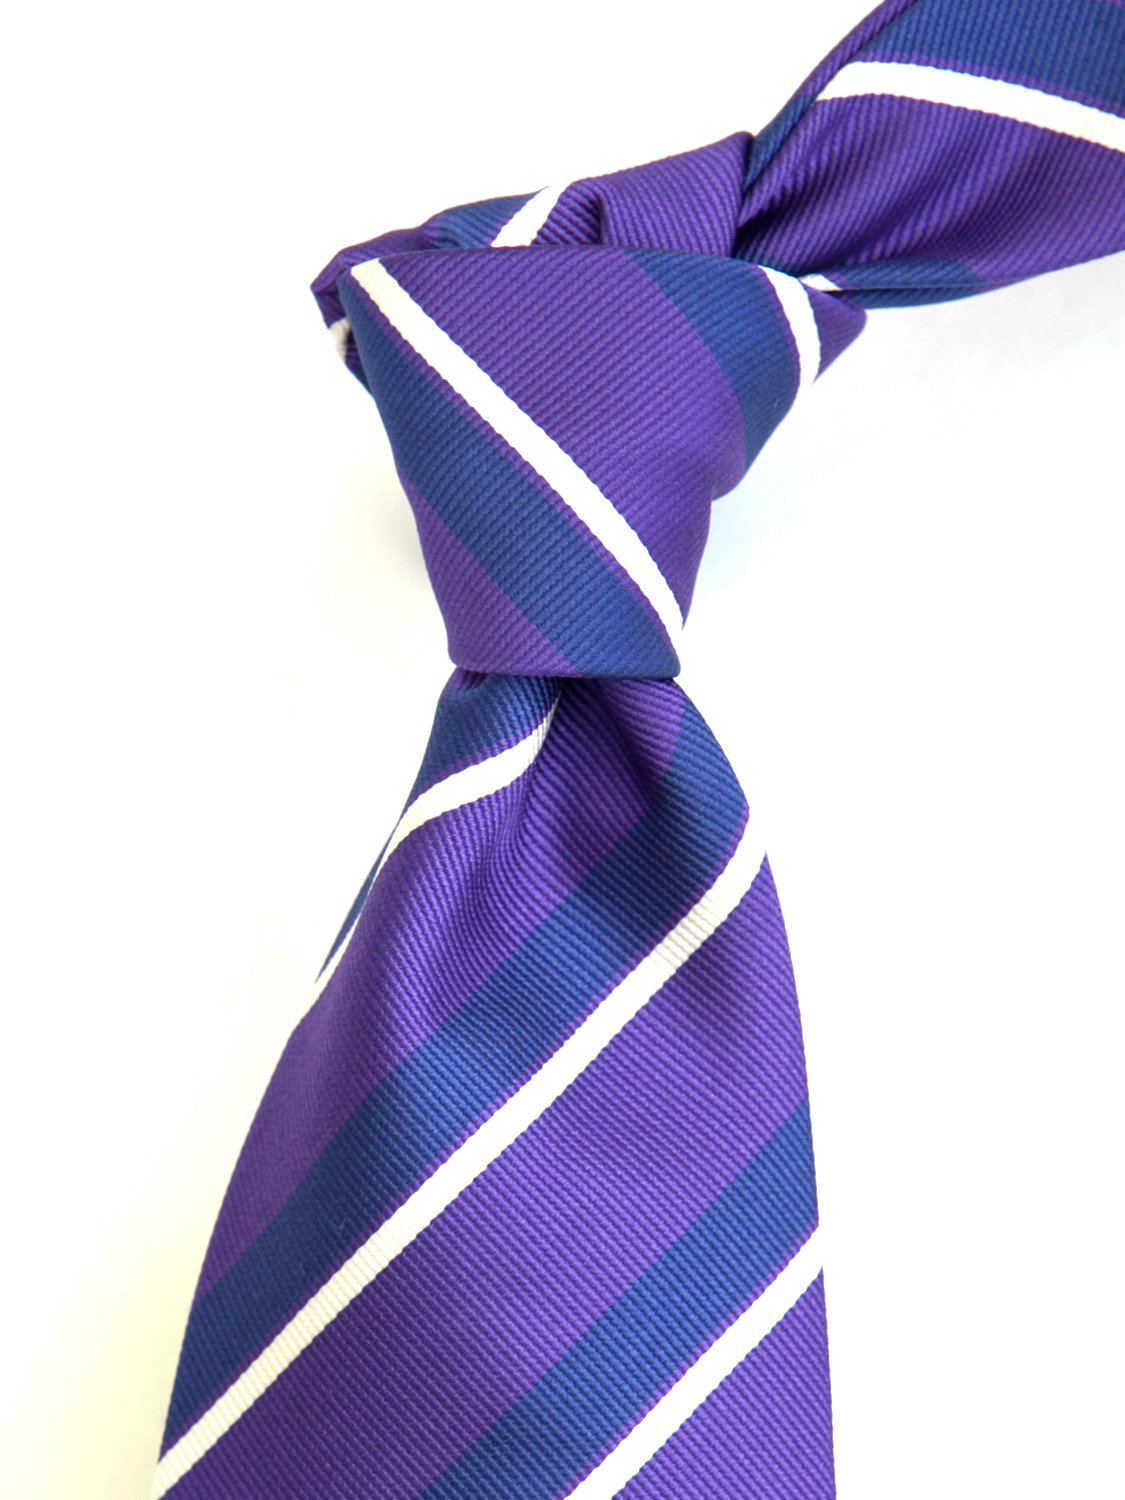 Robert Jensen Finest Silk Handmade Men's Neck Tie - Woven - (Purple with Navy Blue) by ROBERT JENSEN (Image #2)